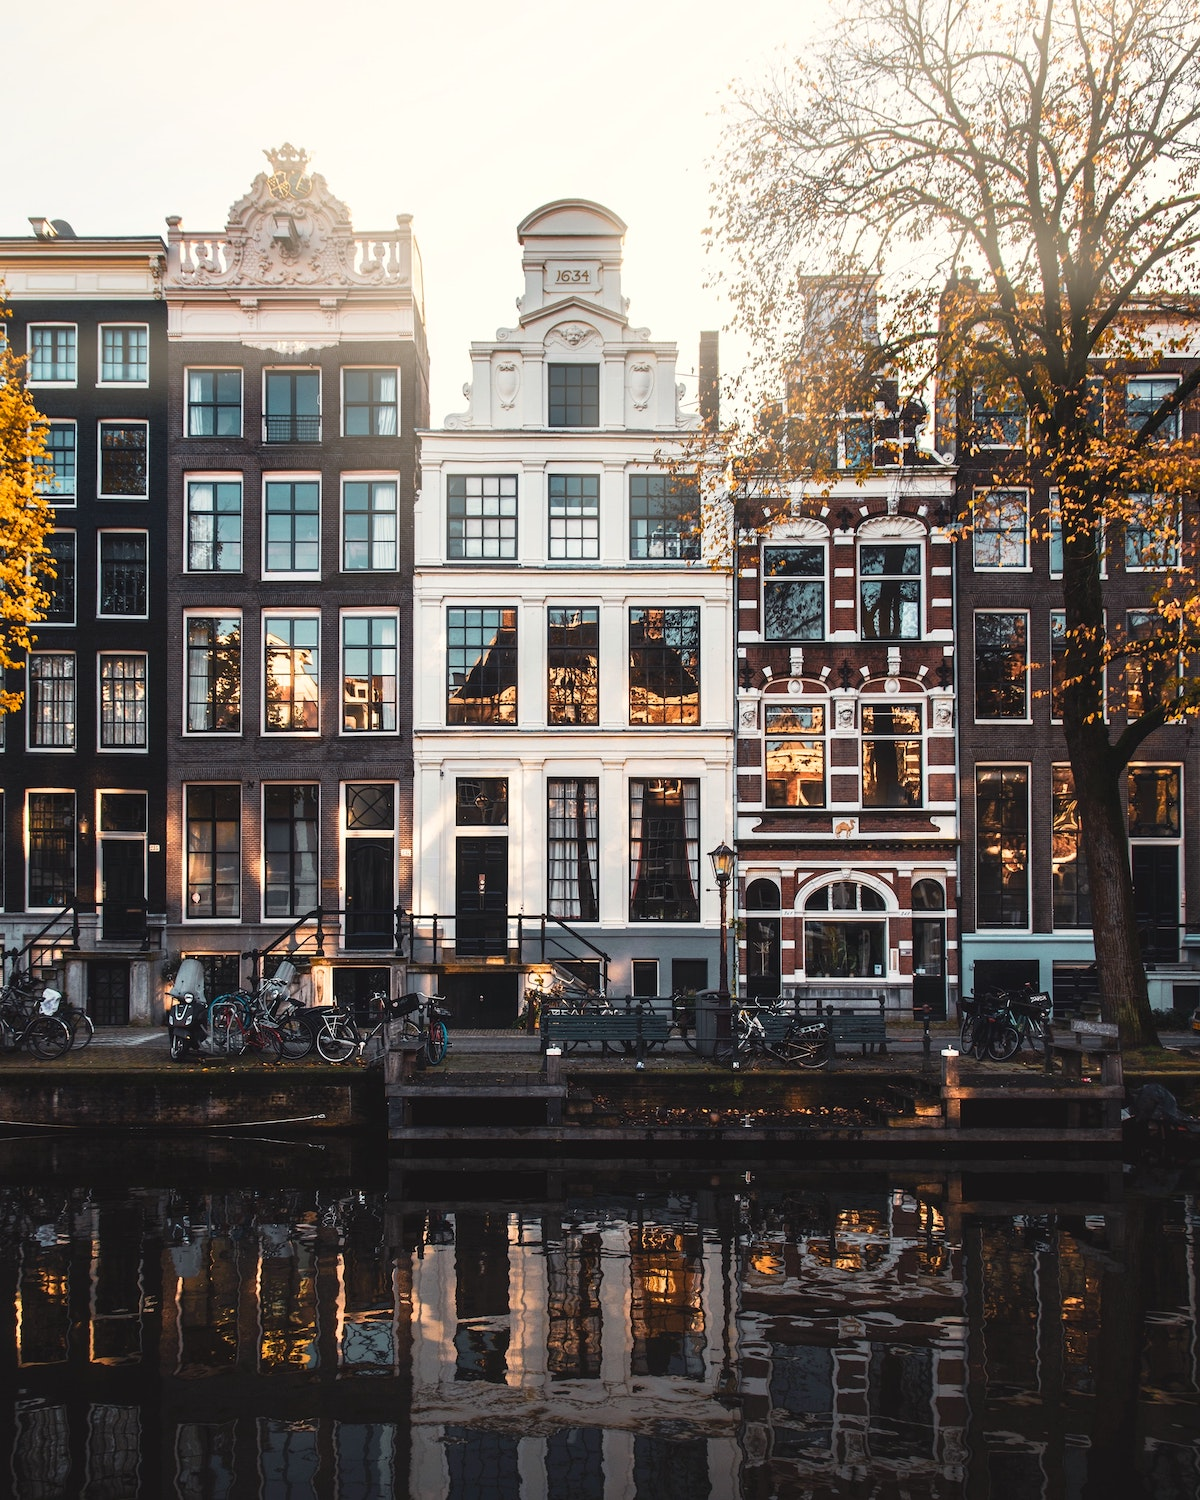 Amsterdam canal area